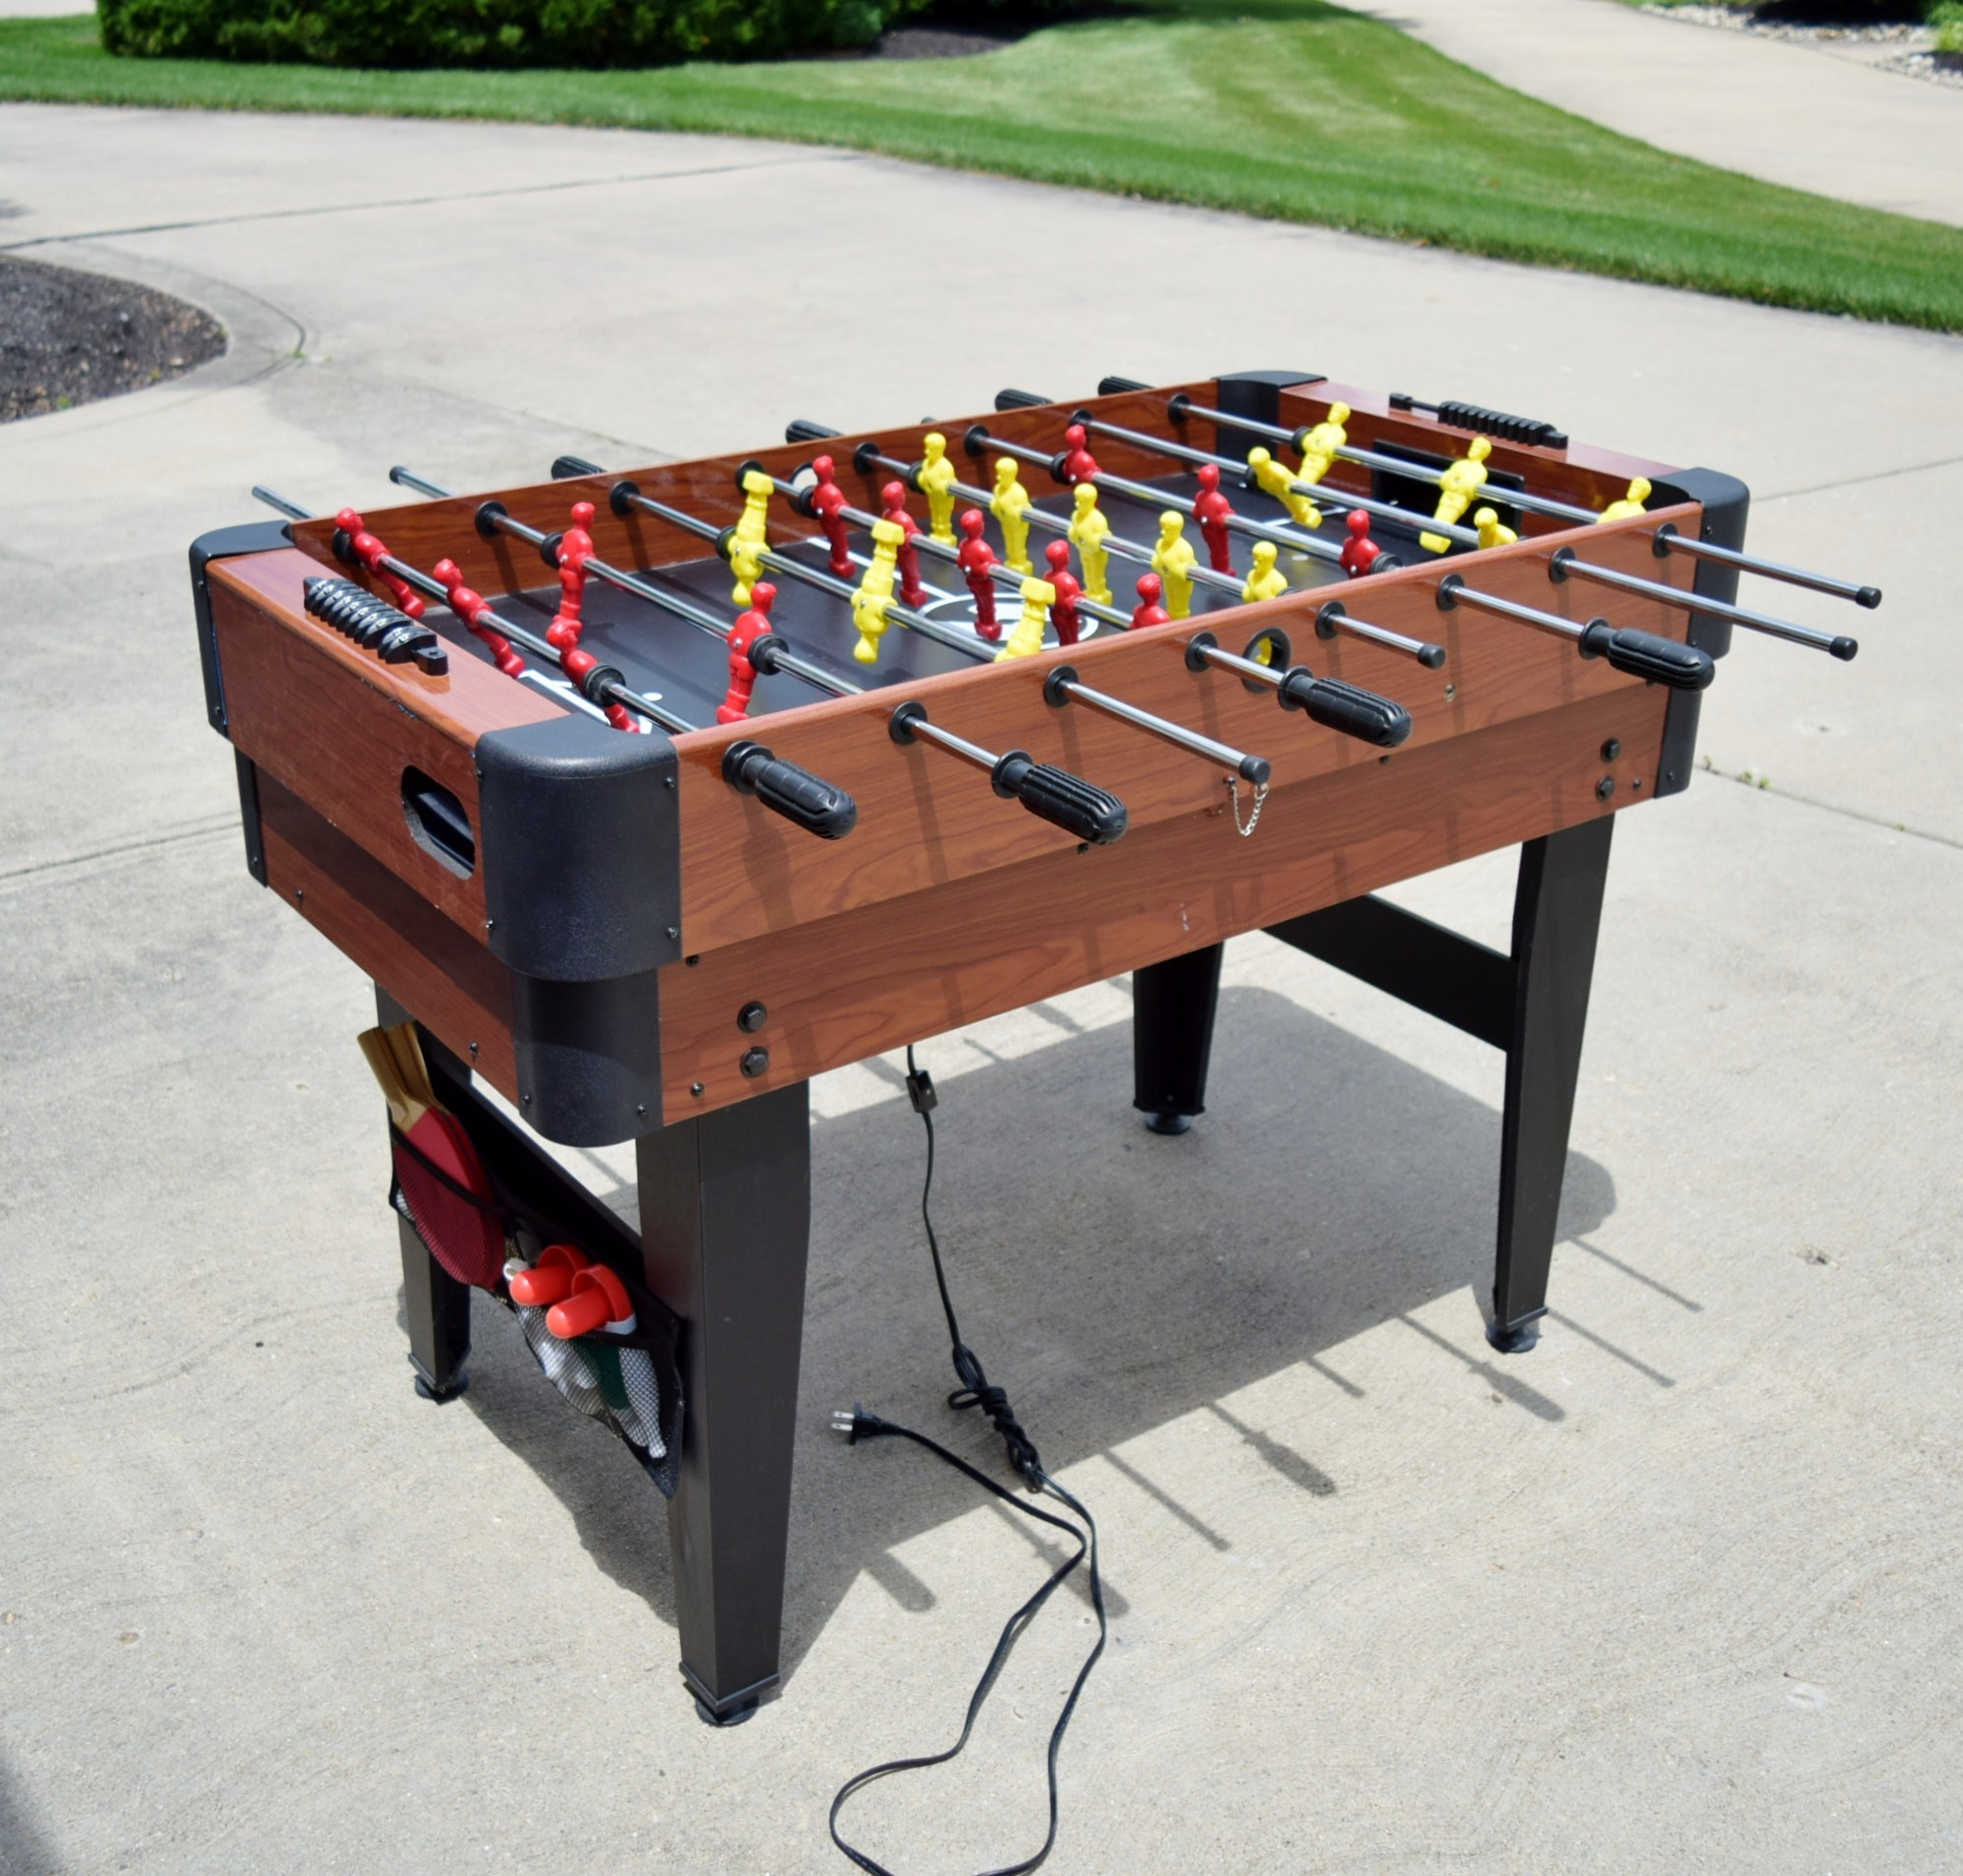 Sportcraft Multi Game Table Including Foosball, Air Hockey, Table Tennis  And More ...